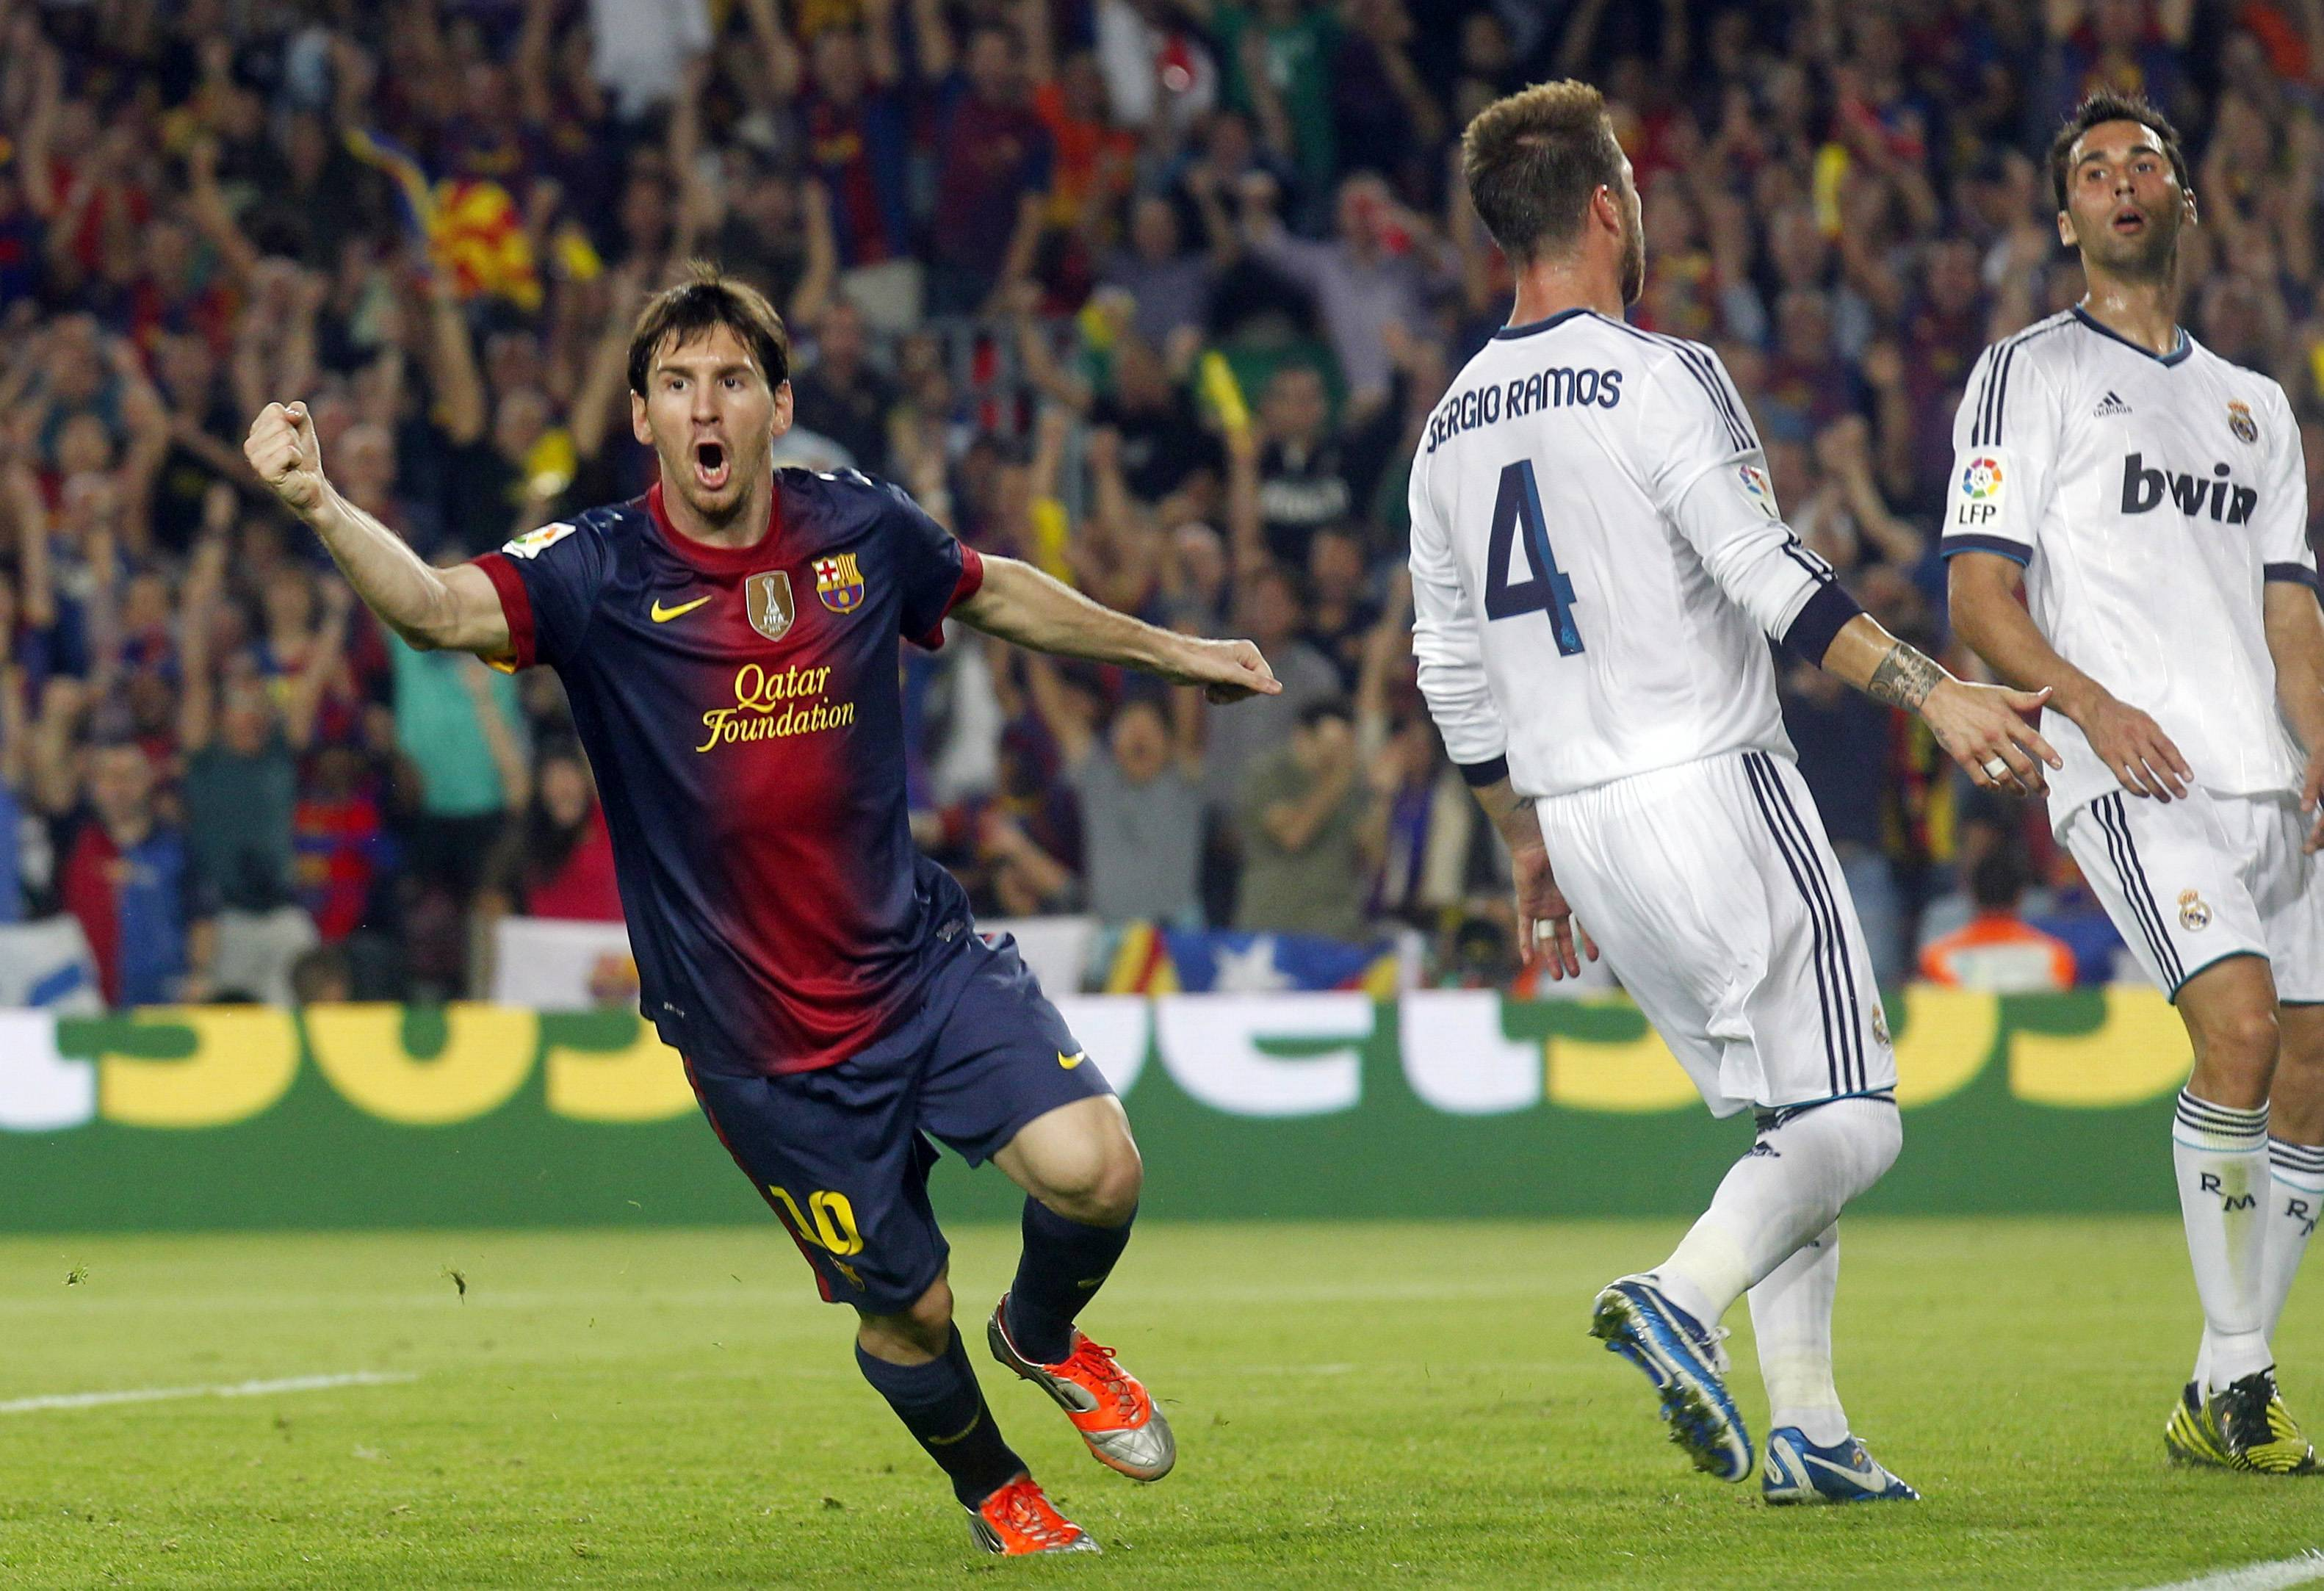 Barcelona's Lionel Messi (L) celebrates next to Real Madrid's Sergio Ramos and Alvaro Arbeloa (R) after scoring a goal during their Spanish first division soccer match at Nou Camp stadium in Barcelona, October 7, 2012.   REUTERS/Albert Gea (SPAIN - Tags: SPORT SOCCER)